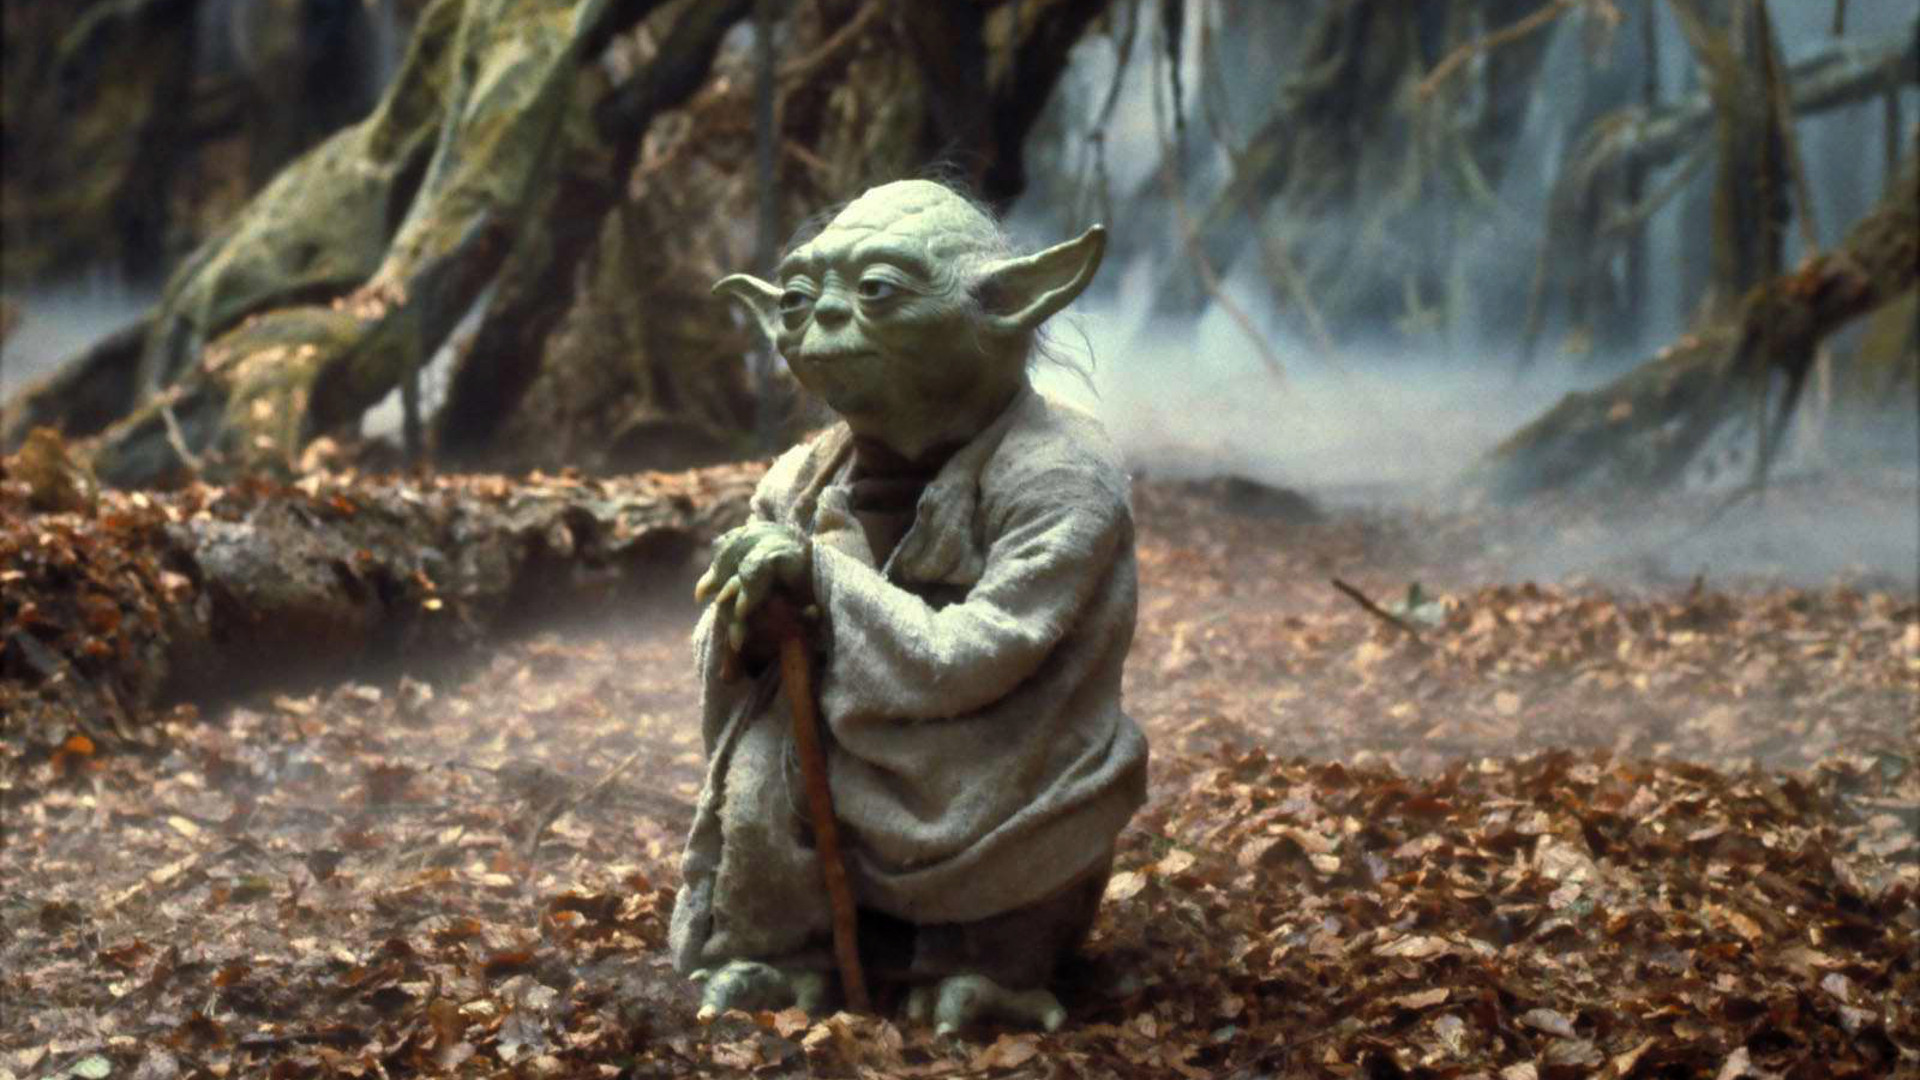 Yoda Star Wars Background Star Wars Yoda 1920x1080 Wallpaper Teahub Io